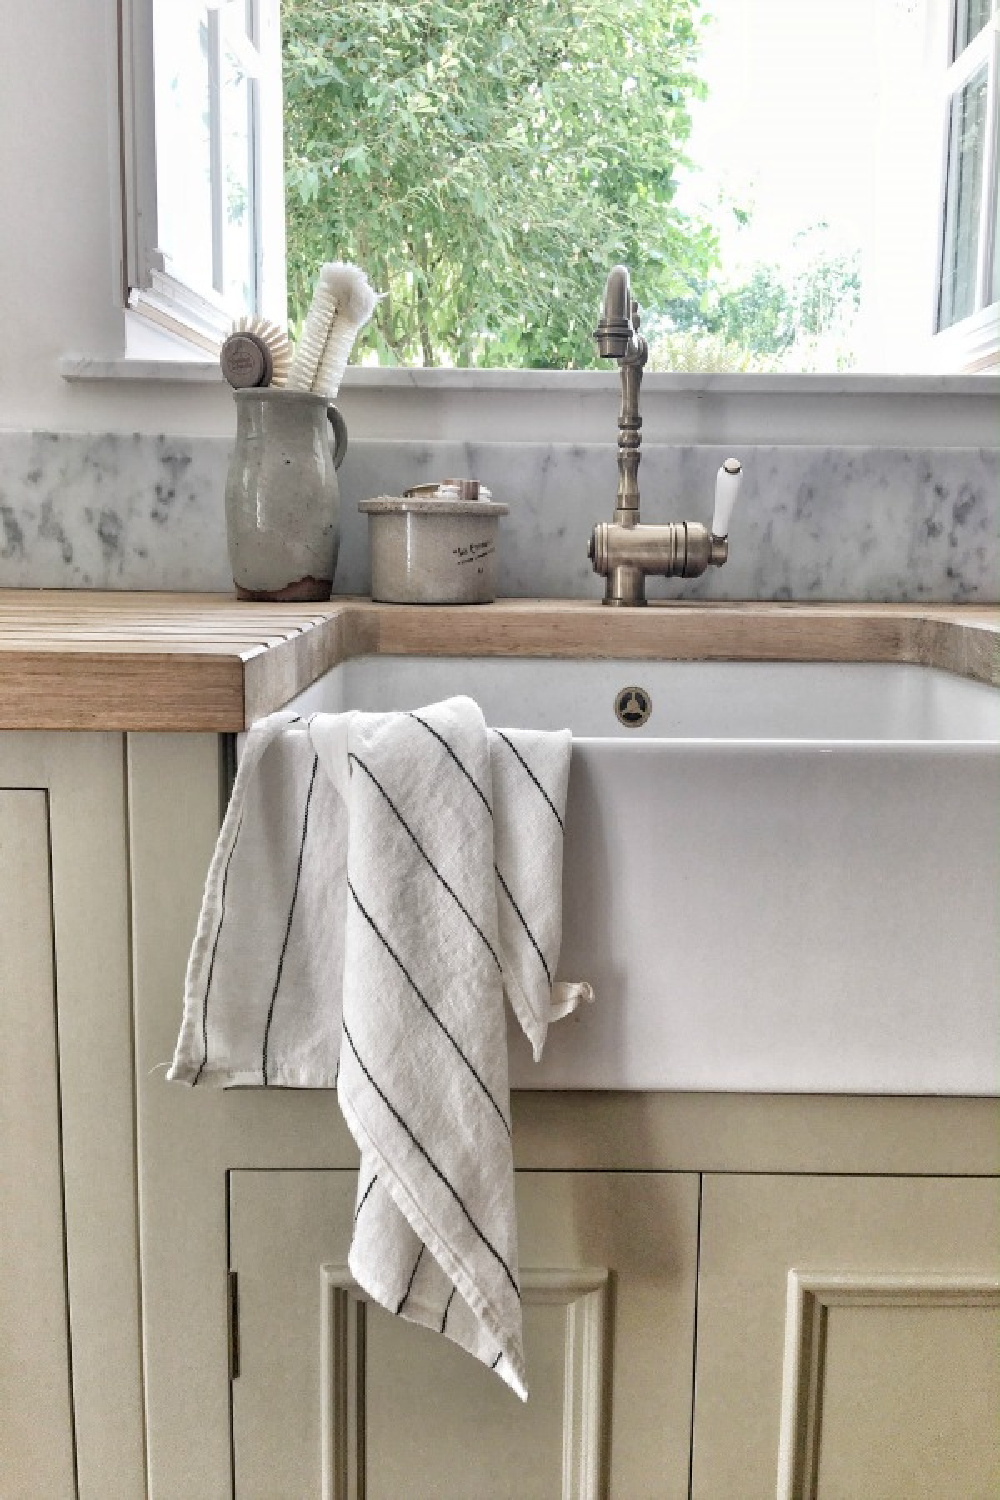 Detail of apron front fireclay farm sink in a kitchen in France. French farmhouse design inspiration, house tour, interview, and French homewares and baskets. Vivi et Margot. #frenchkitchen #farmsink #frenchfarmhouse #hellolovelystudio #frenchcountry #designinspiration #interiordesign #rusticdecor #frenchhome